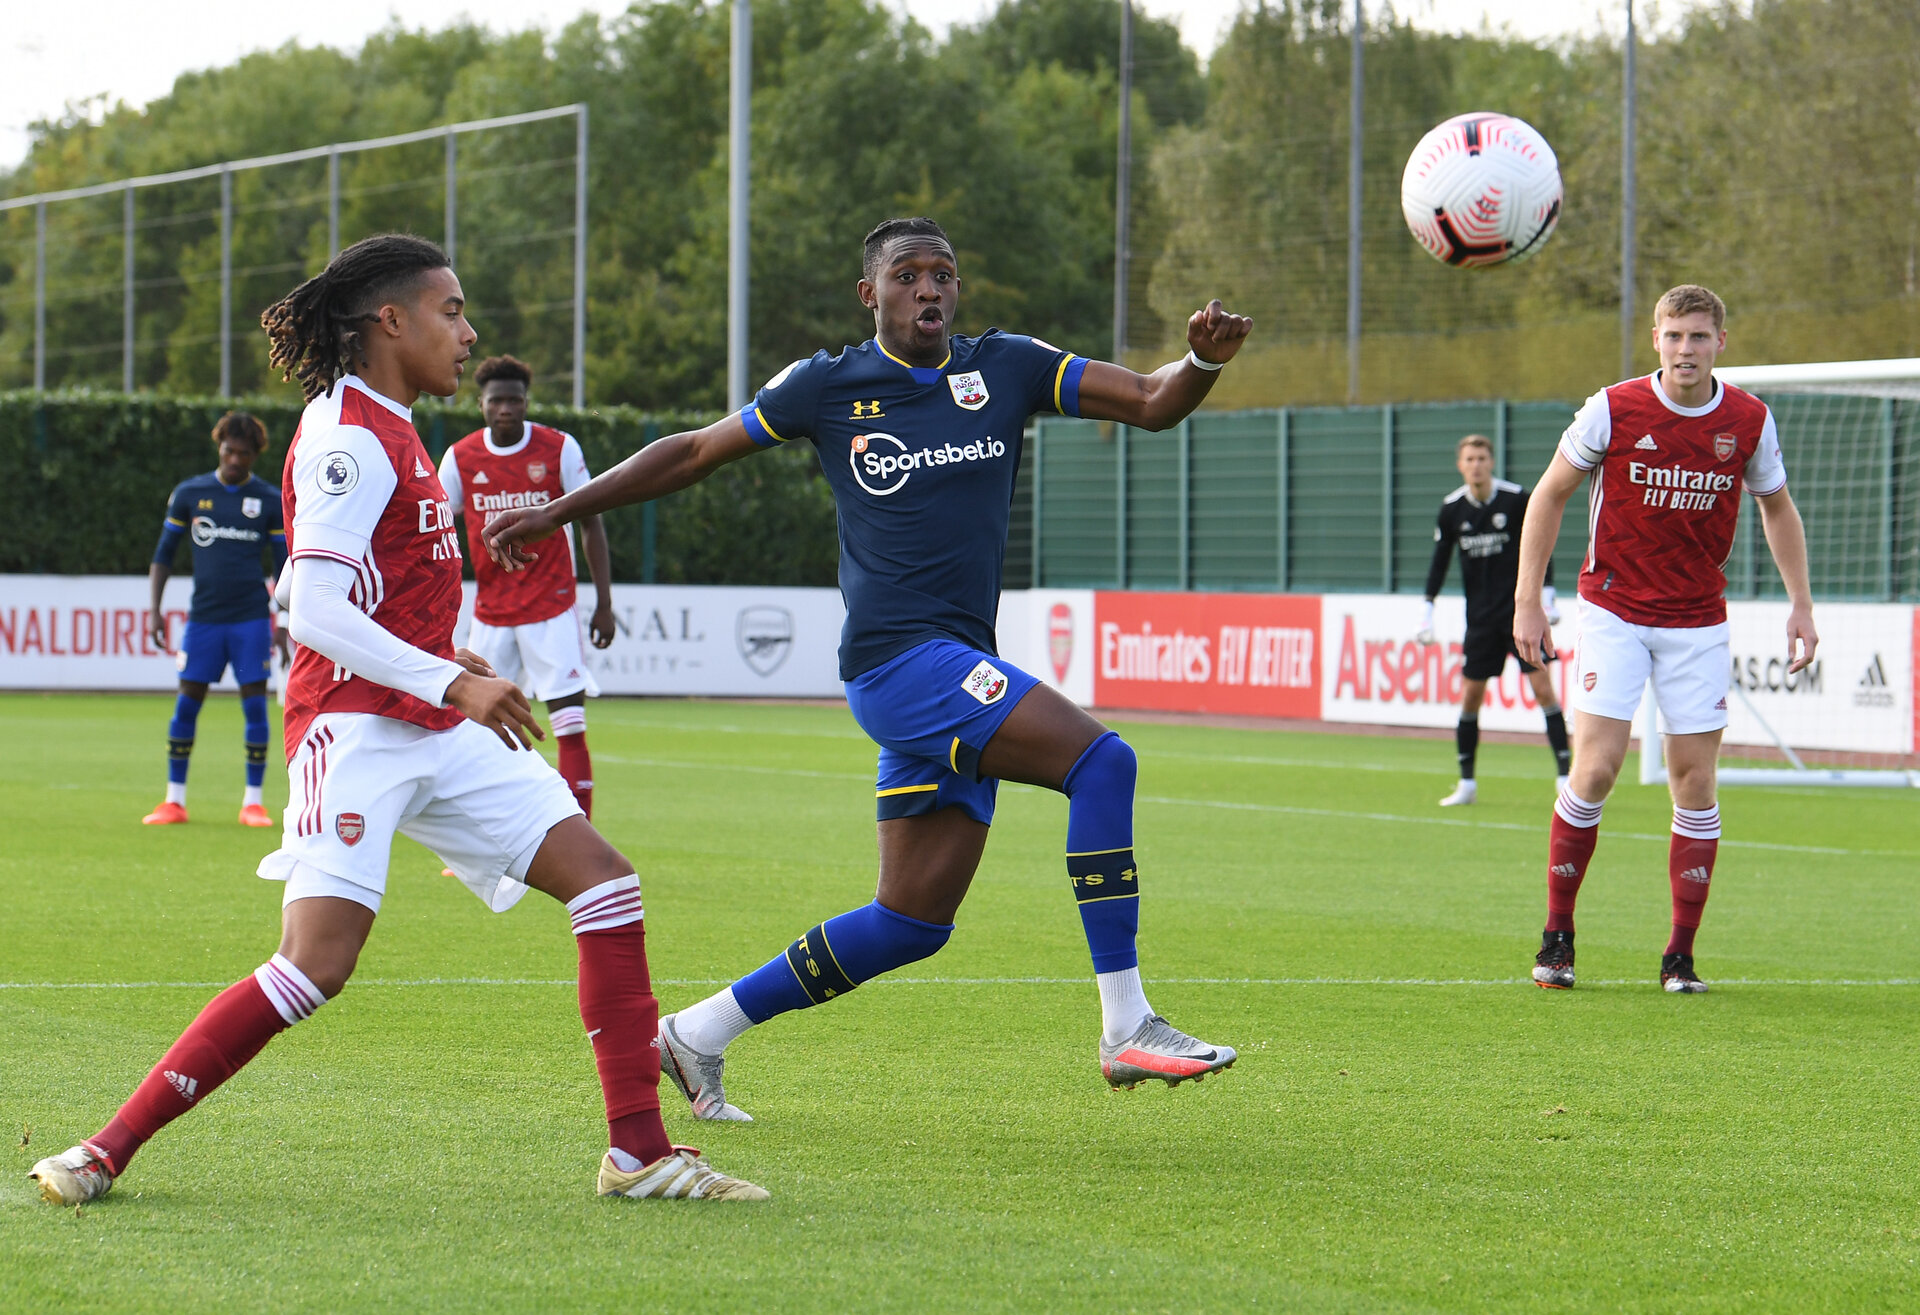 ST ALBANS, ENGLAND - SEPTEMBER 11: Dan N'Lundulu(centre) of Southampton during the Premier League 2 match between Arsenal U23 and Southampton U23 at London Colney on September 11, 2020 in St Albans, England. (Photo by David Price/Arsenal FC via Getty Images)